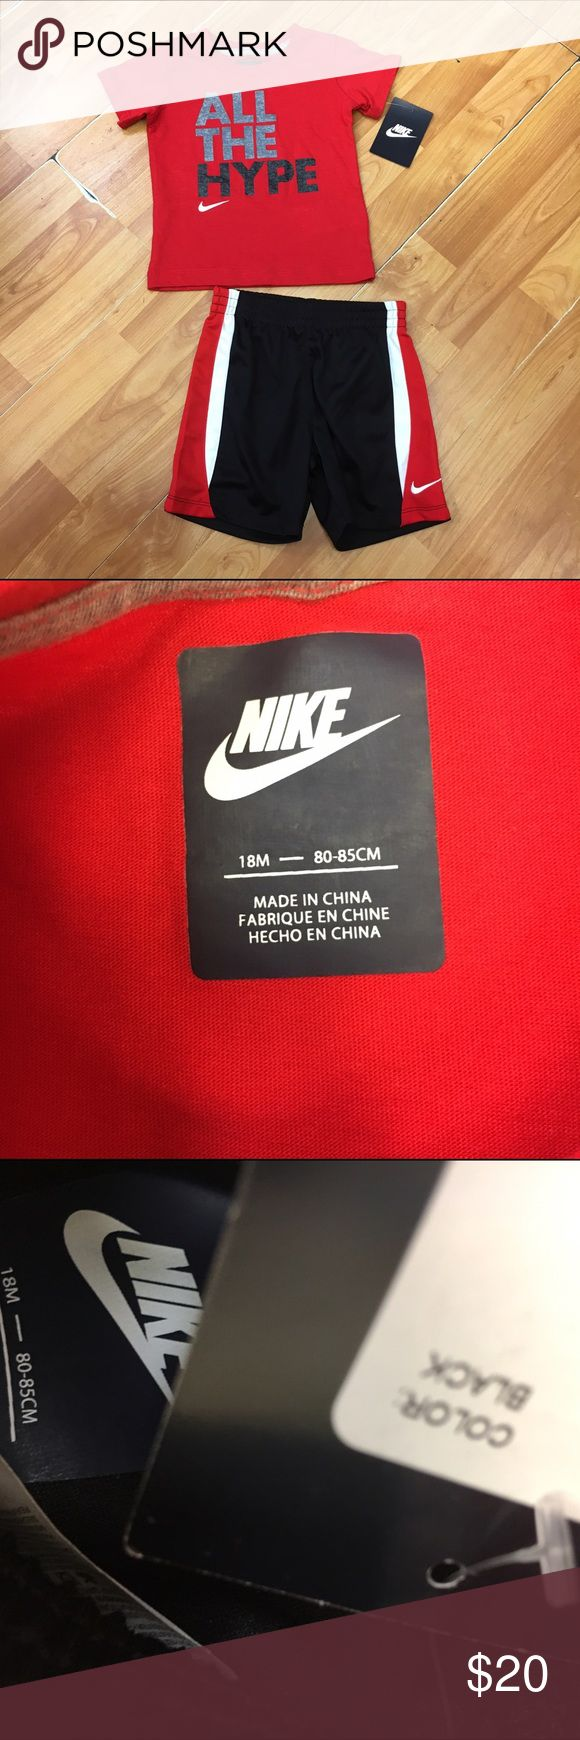 """Nike 18 Mo Red Black Outfit All the Hype NEW NWT Nike 18 Mo Red Black Outfit All the Hype NEW NWT   Super cute!  Tee says """"All the Hype"""" and shorts are basketball style.  Elastic waist.  New with tags.  #new #nwt #red #black #white #outfit #set #bundle #bundles #allthehype #athleticapparel #athleticwear #basketballshorts Nike Matching Sets"""